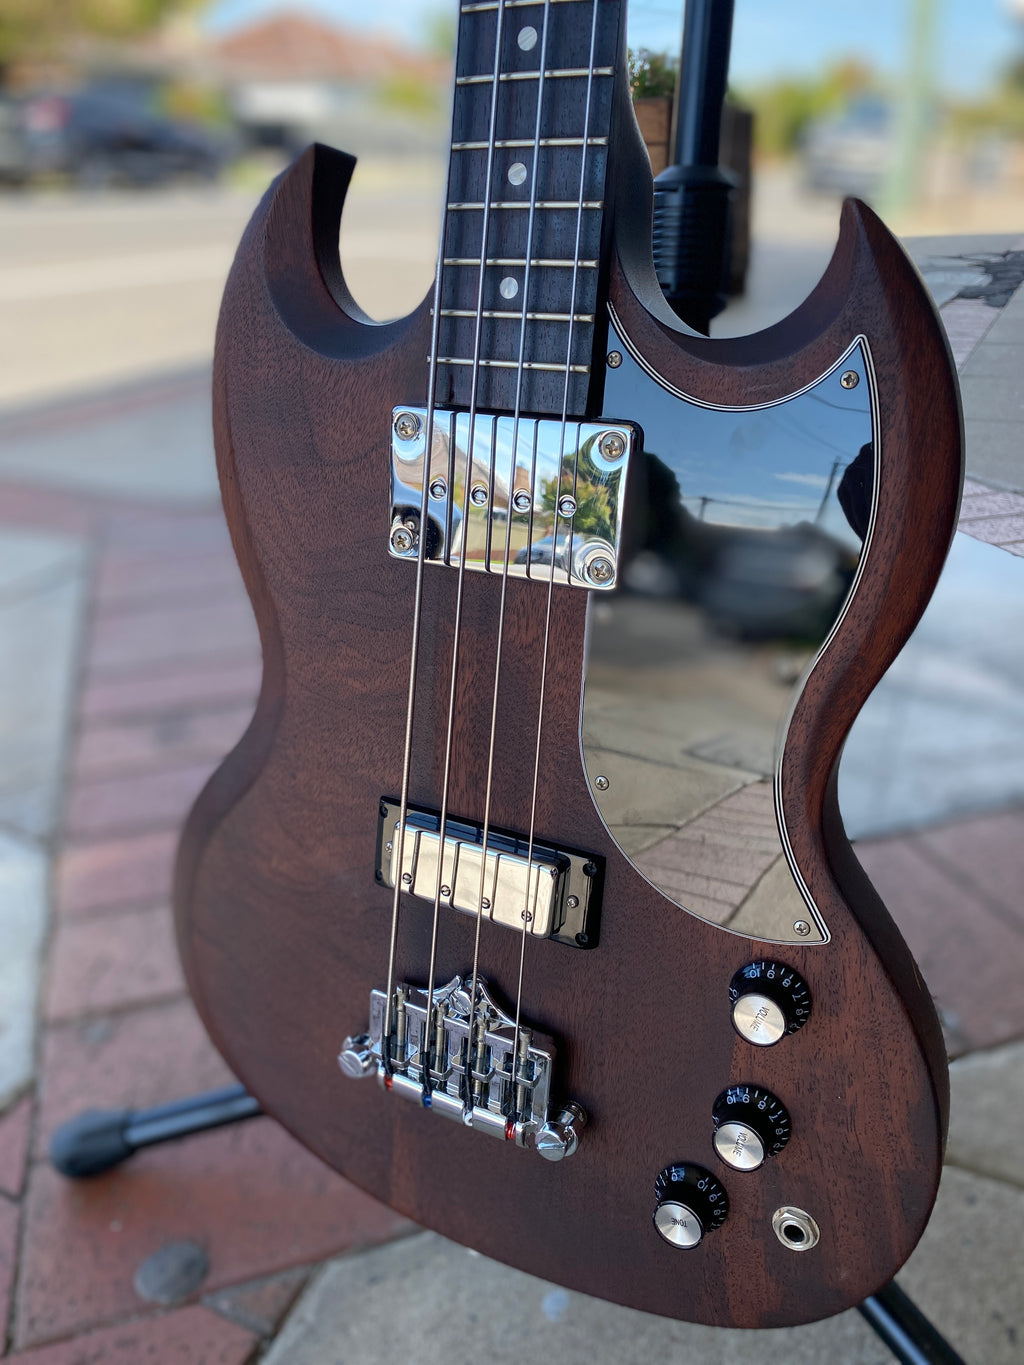 Gibson 120th Anniversary 2014 SG Bass - Worn Brown (s/hand) -On Layby